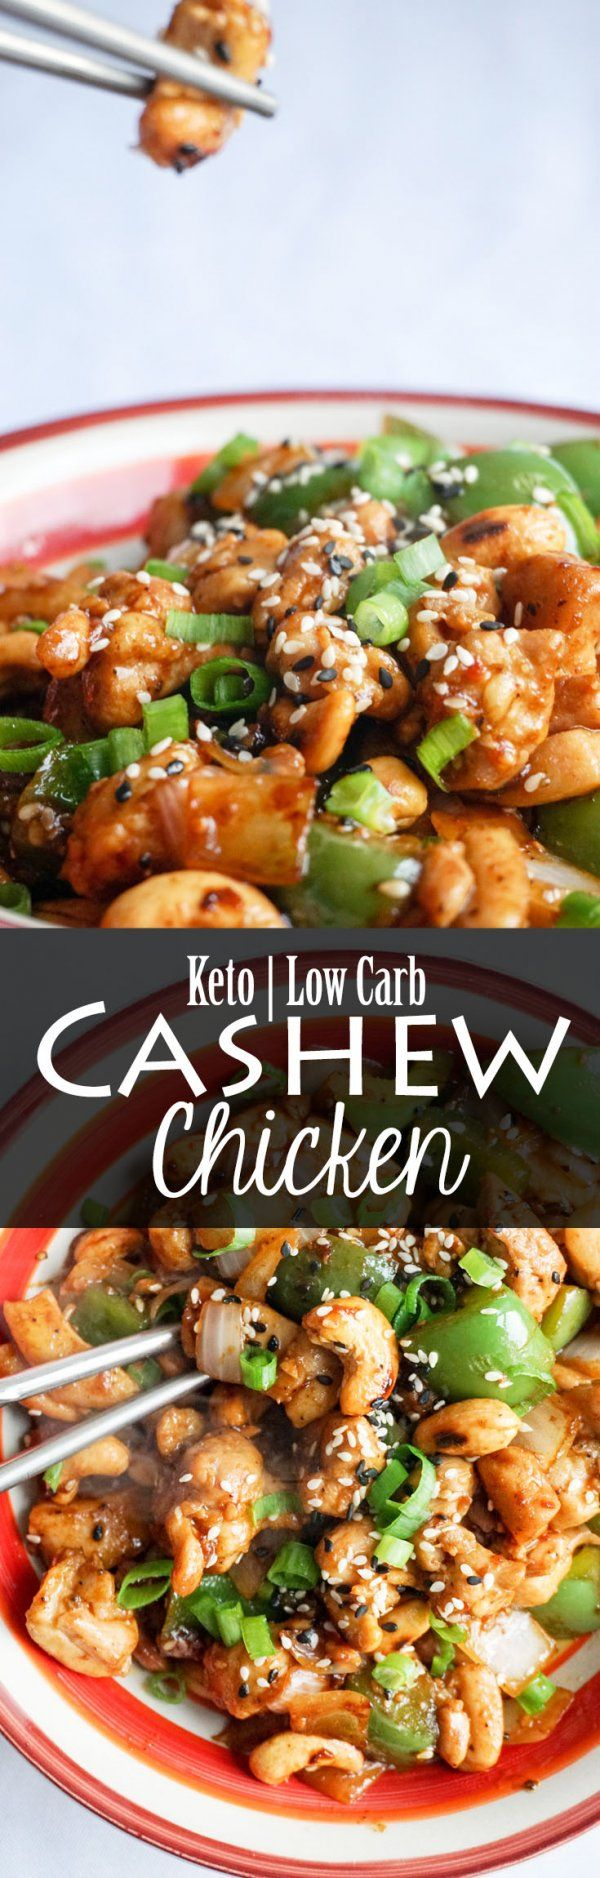 Easy Cashew Chicken Ready In Under 15 Minutes Keto Low Carb Keto Recipes Easy Diet Recipes Keto Diet Recipes